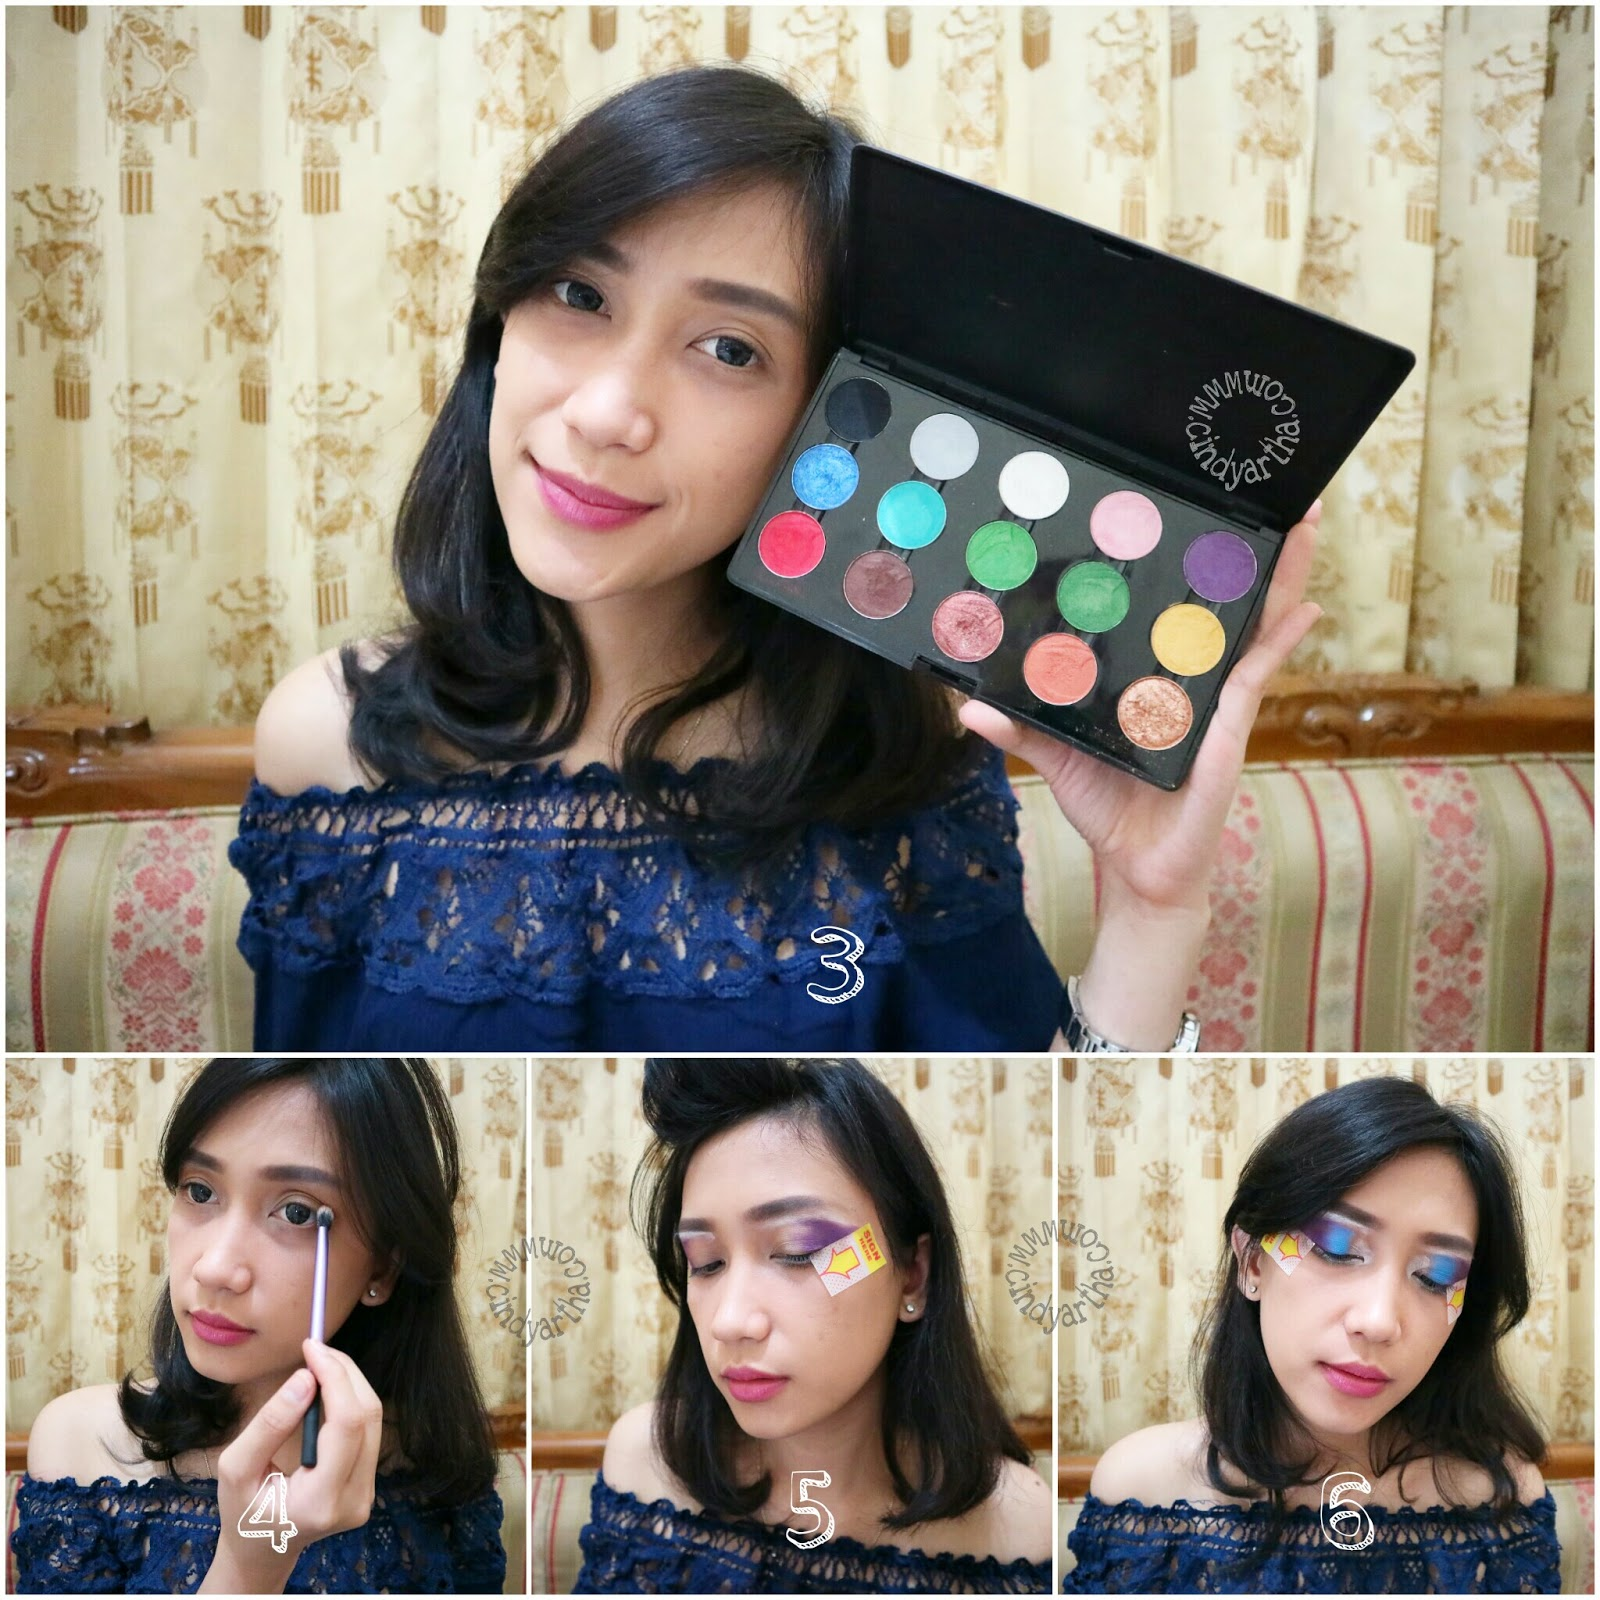 3 Menggunakan Inez Cosmetics Professional Color Eyeshadow Pallete